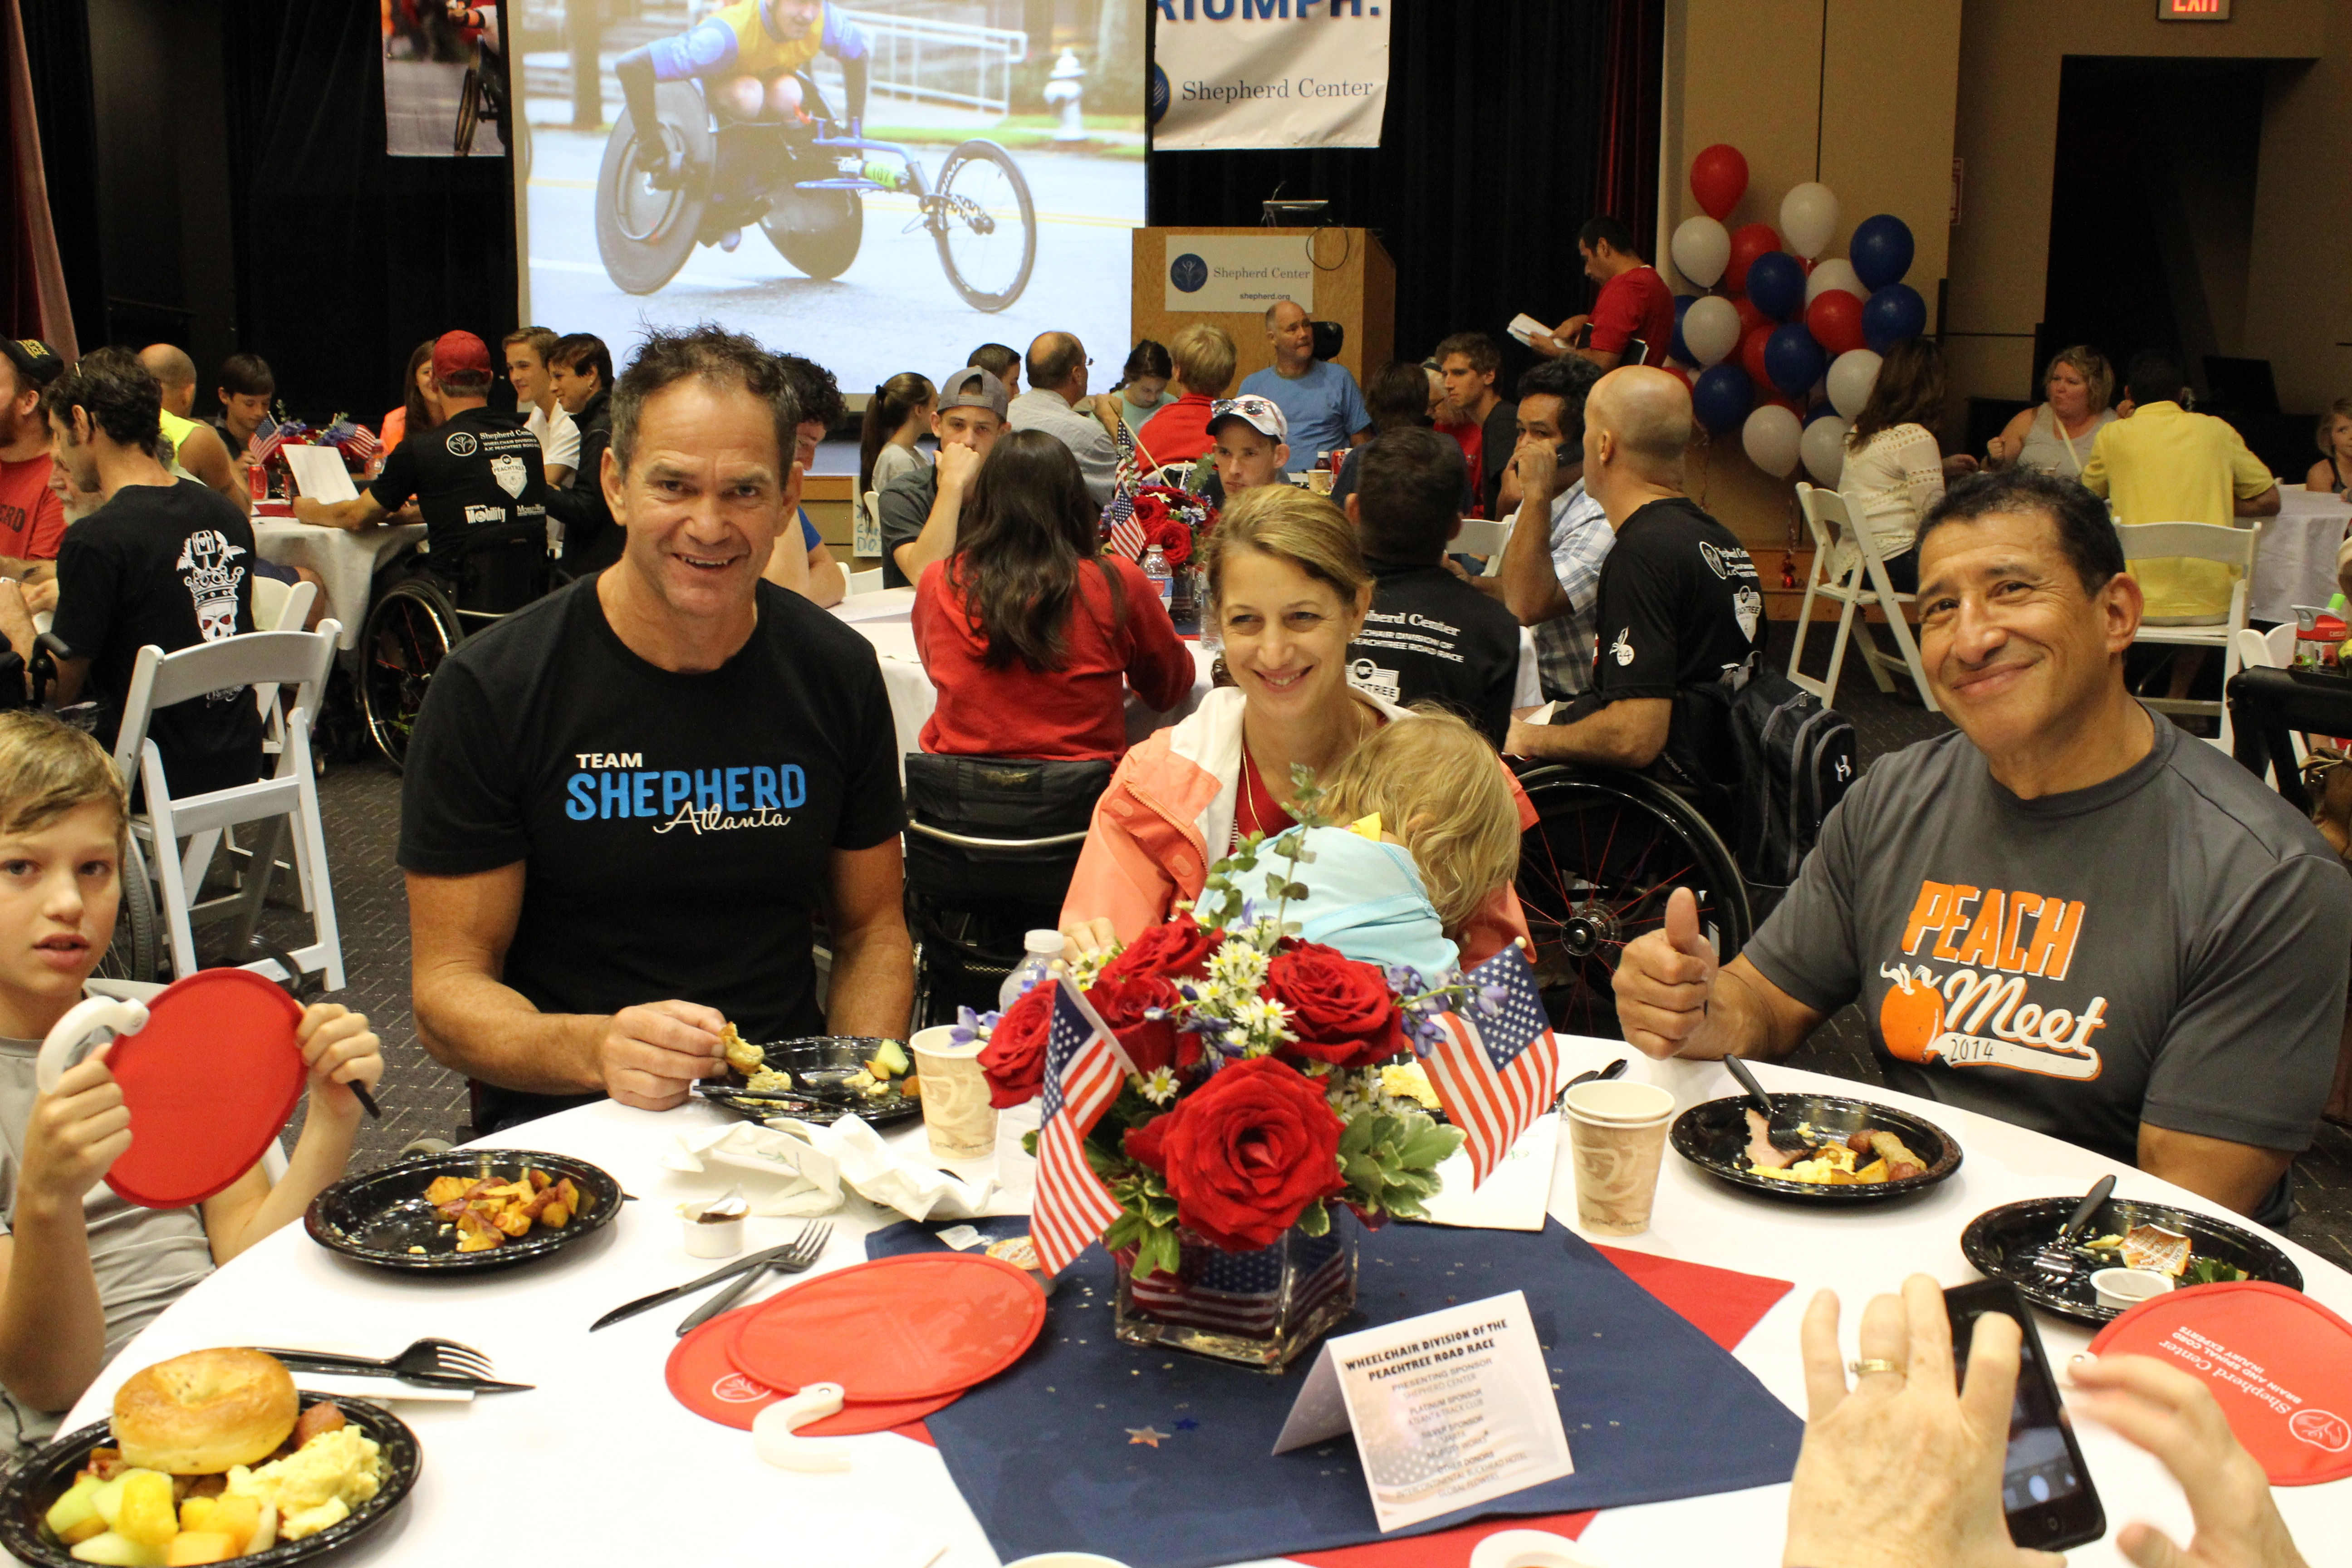 Peachtree road race results 2015 - Winners Announced For 2015 Wheelchair Division Of The Peachtree Road Race